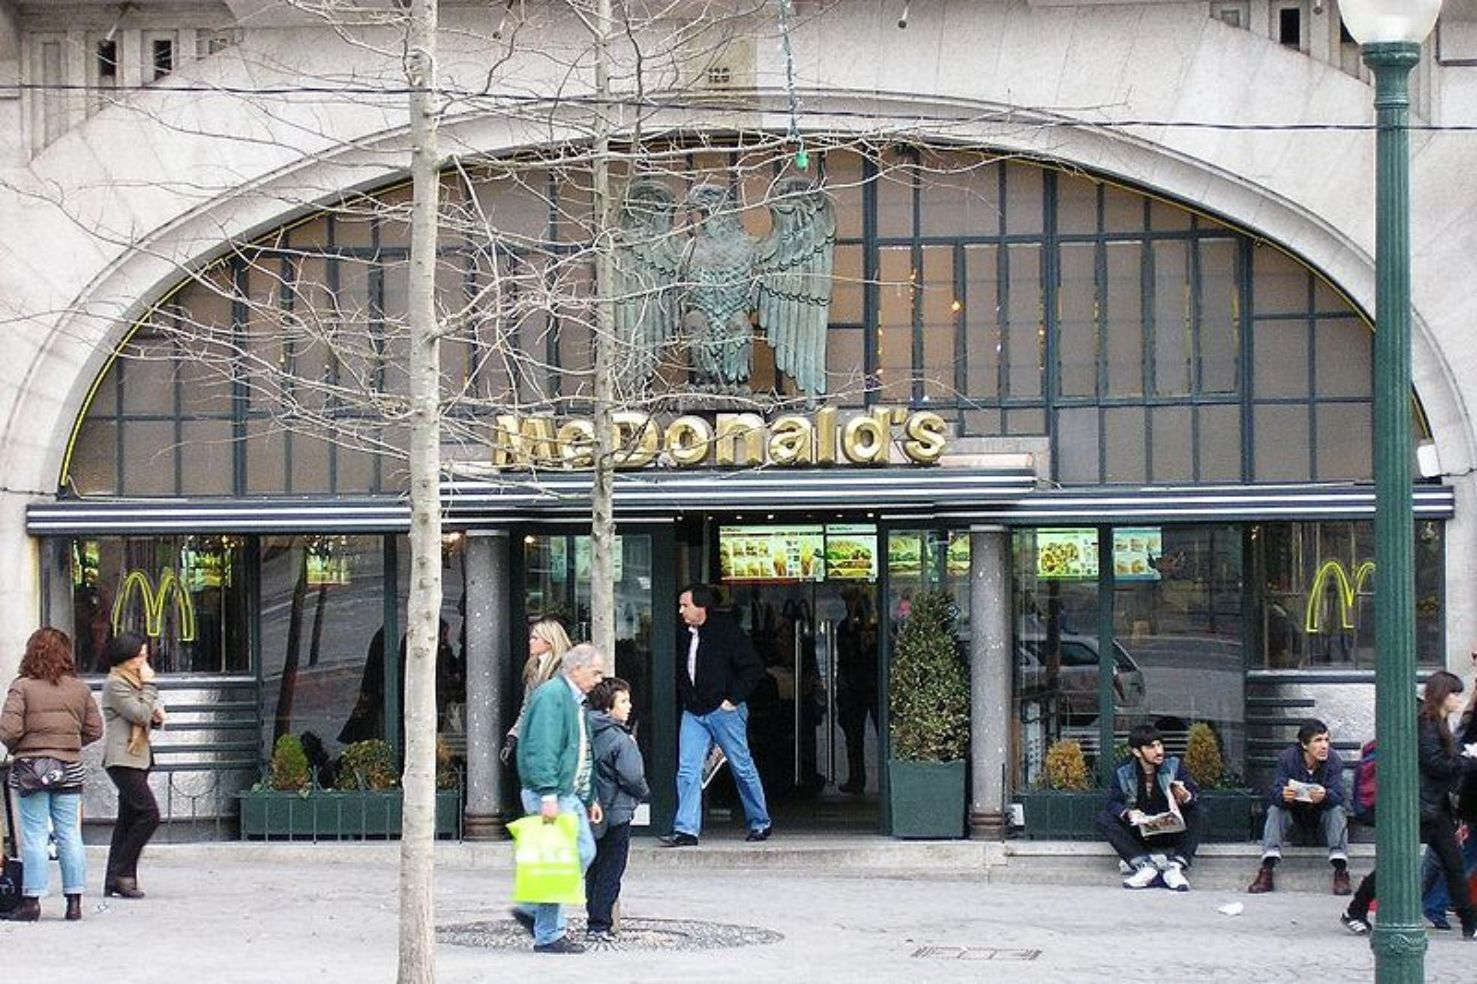 A fancy looking McDonald's in Porto, Portugal.